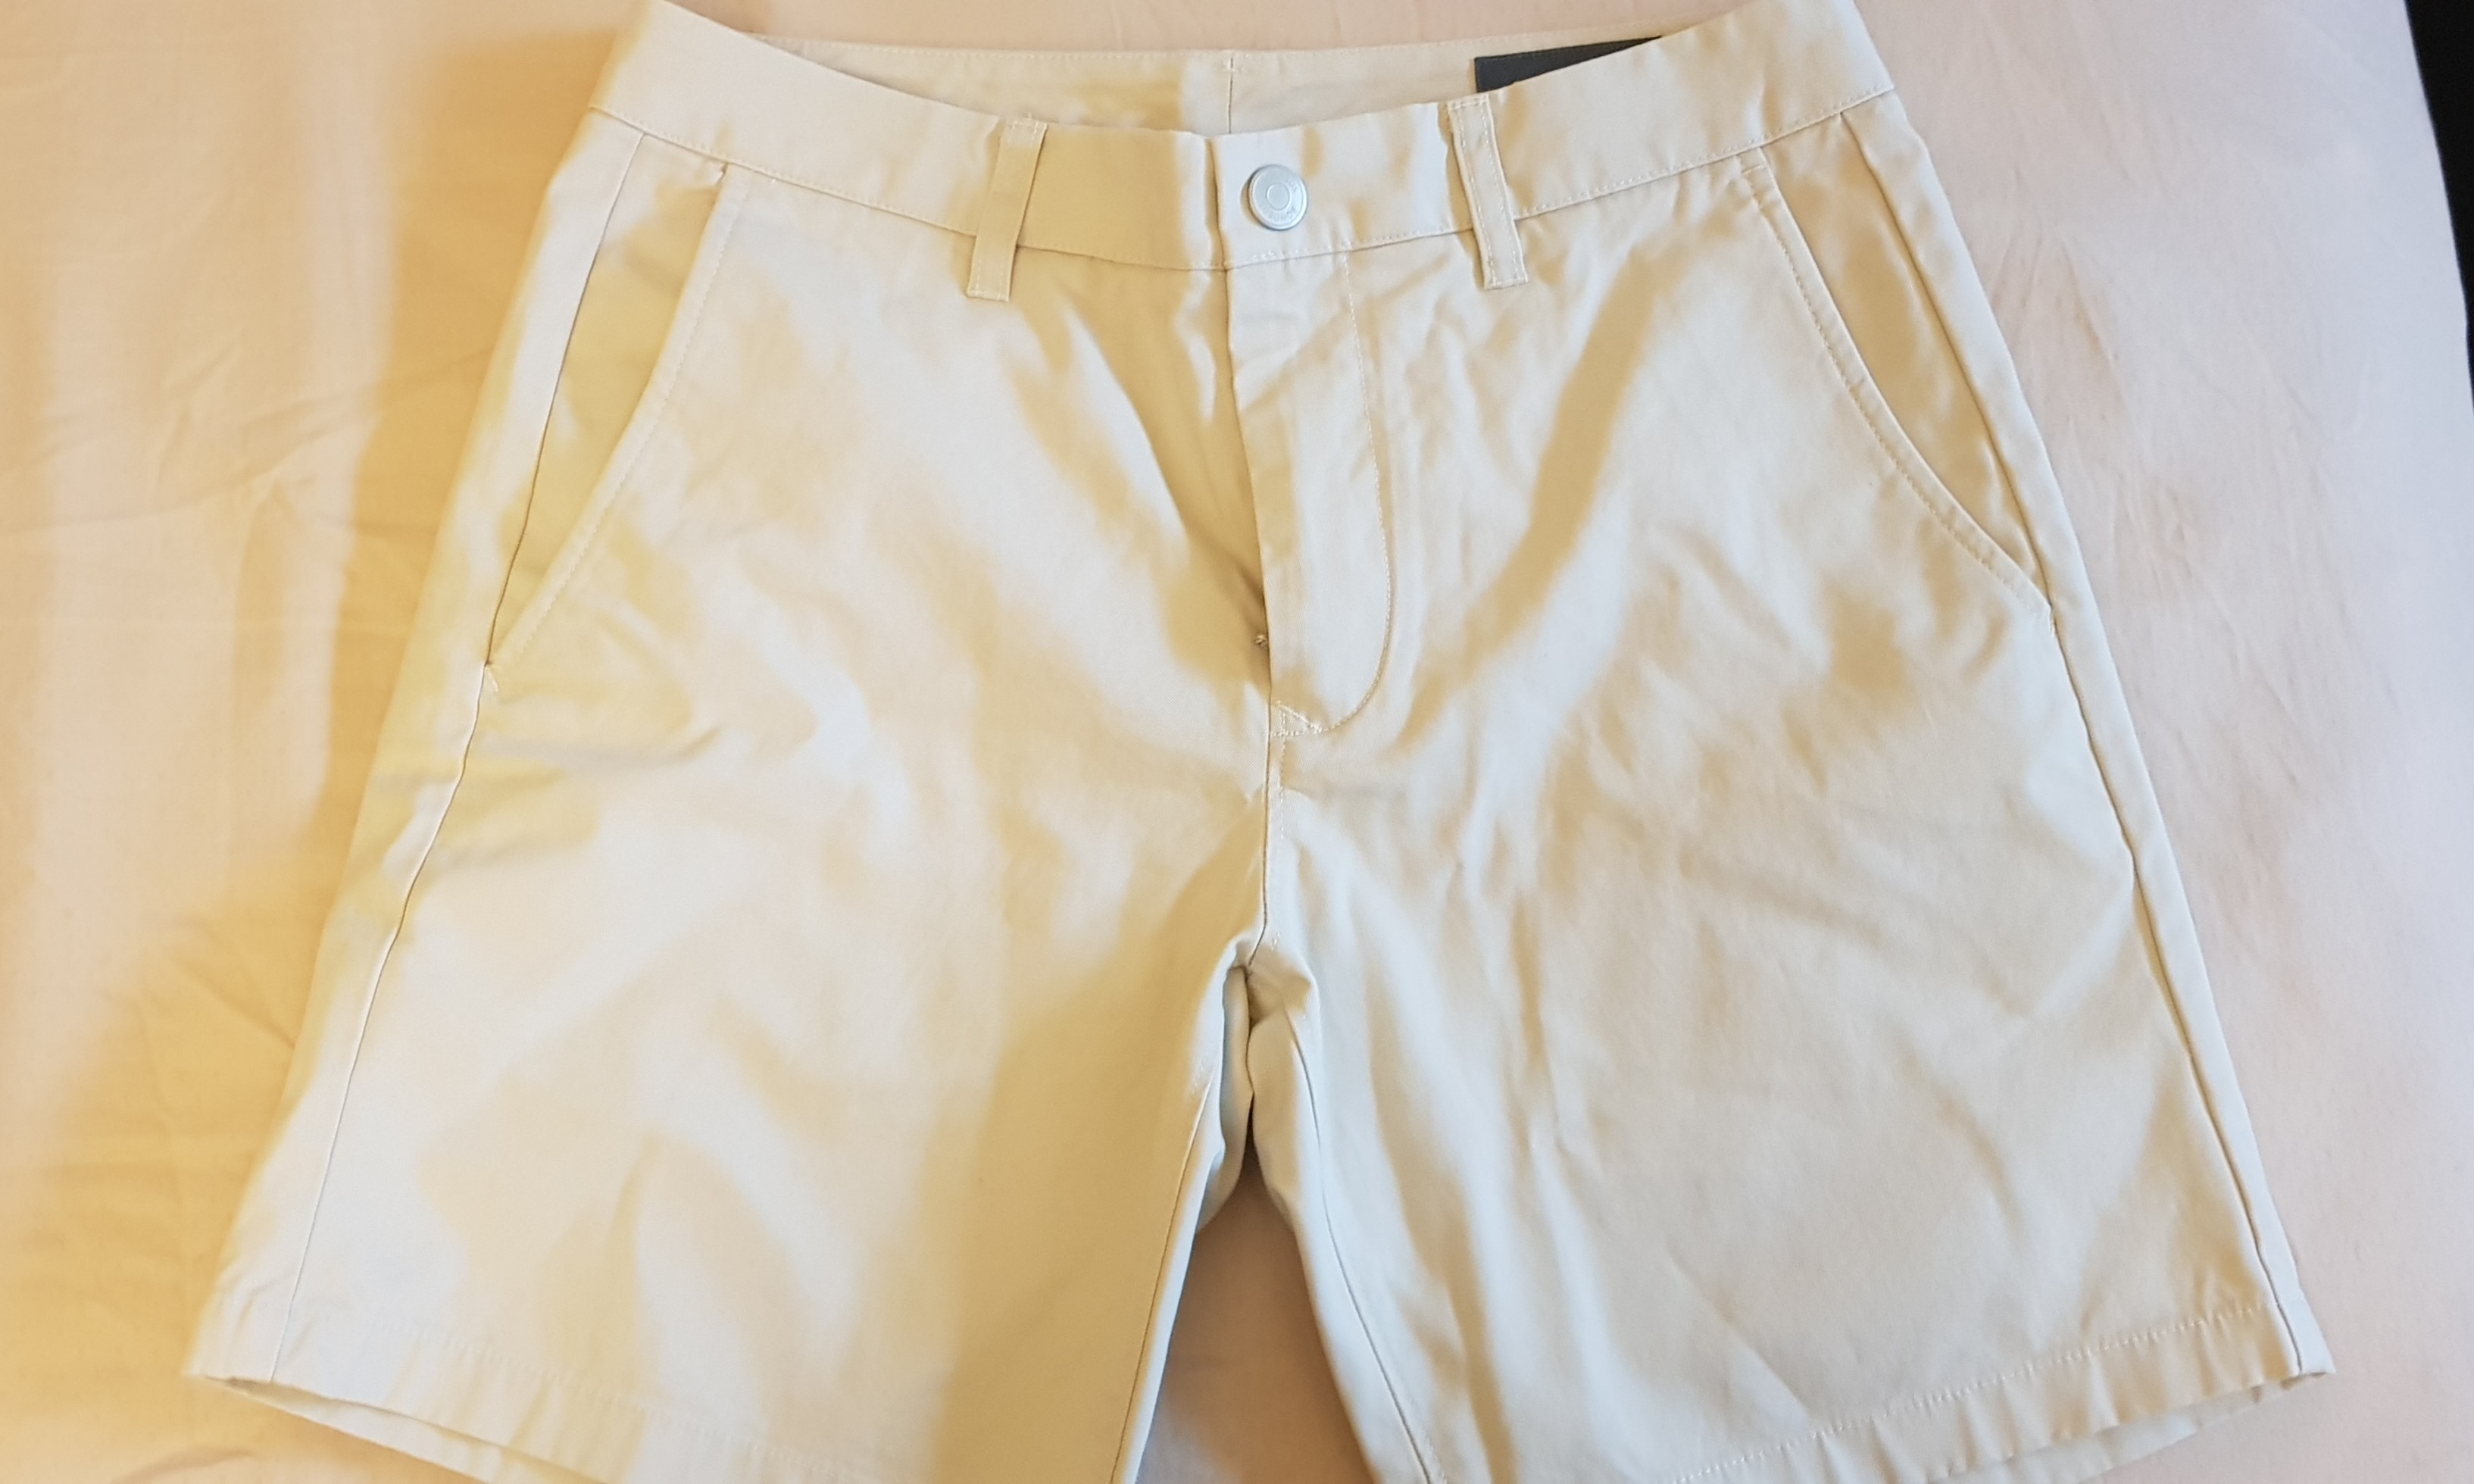 1d5bb2f90d Bonobos washed chino shorts, Men's Fashion, Clothes, Bottoms on ...